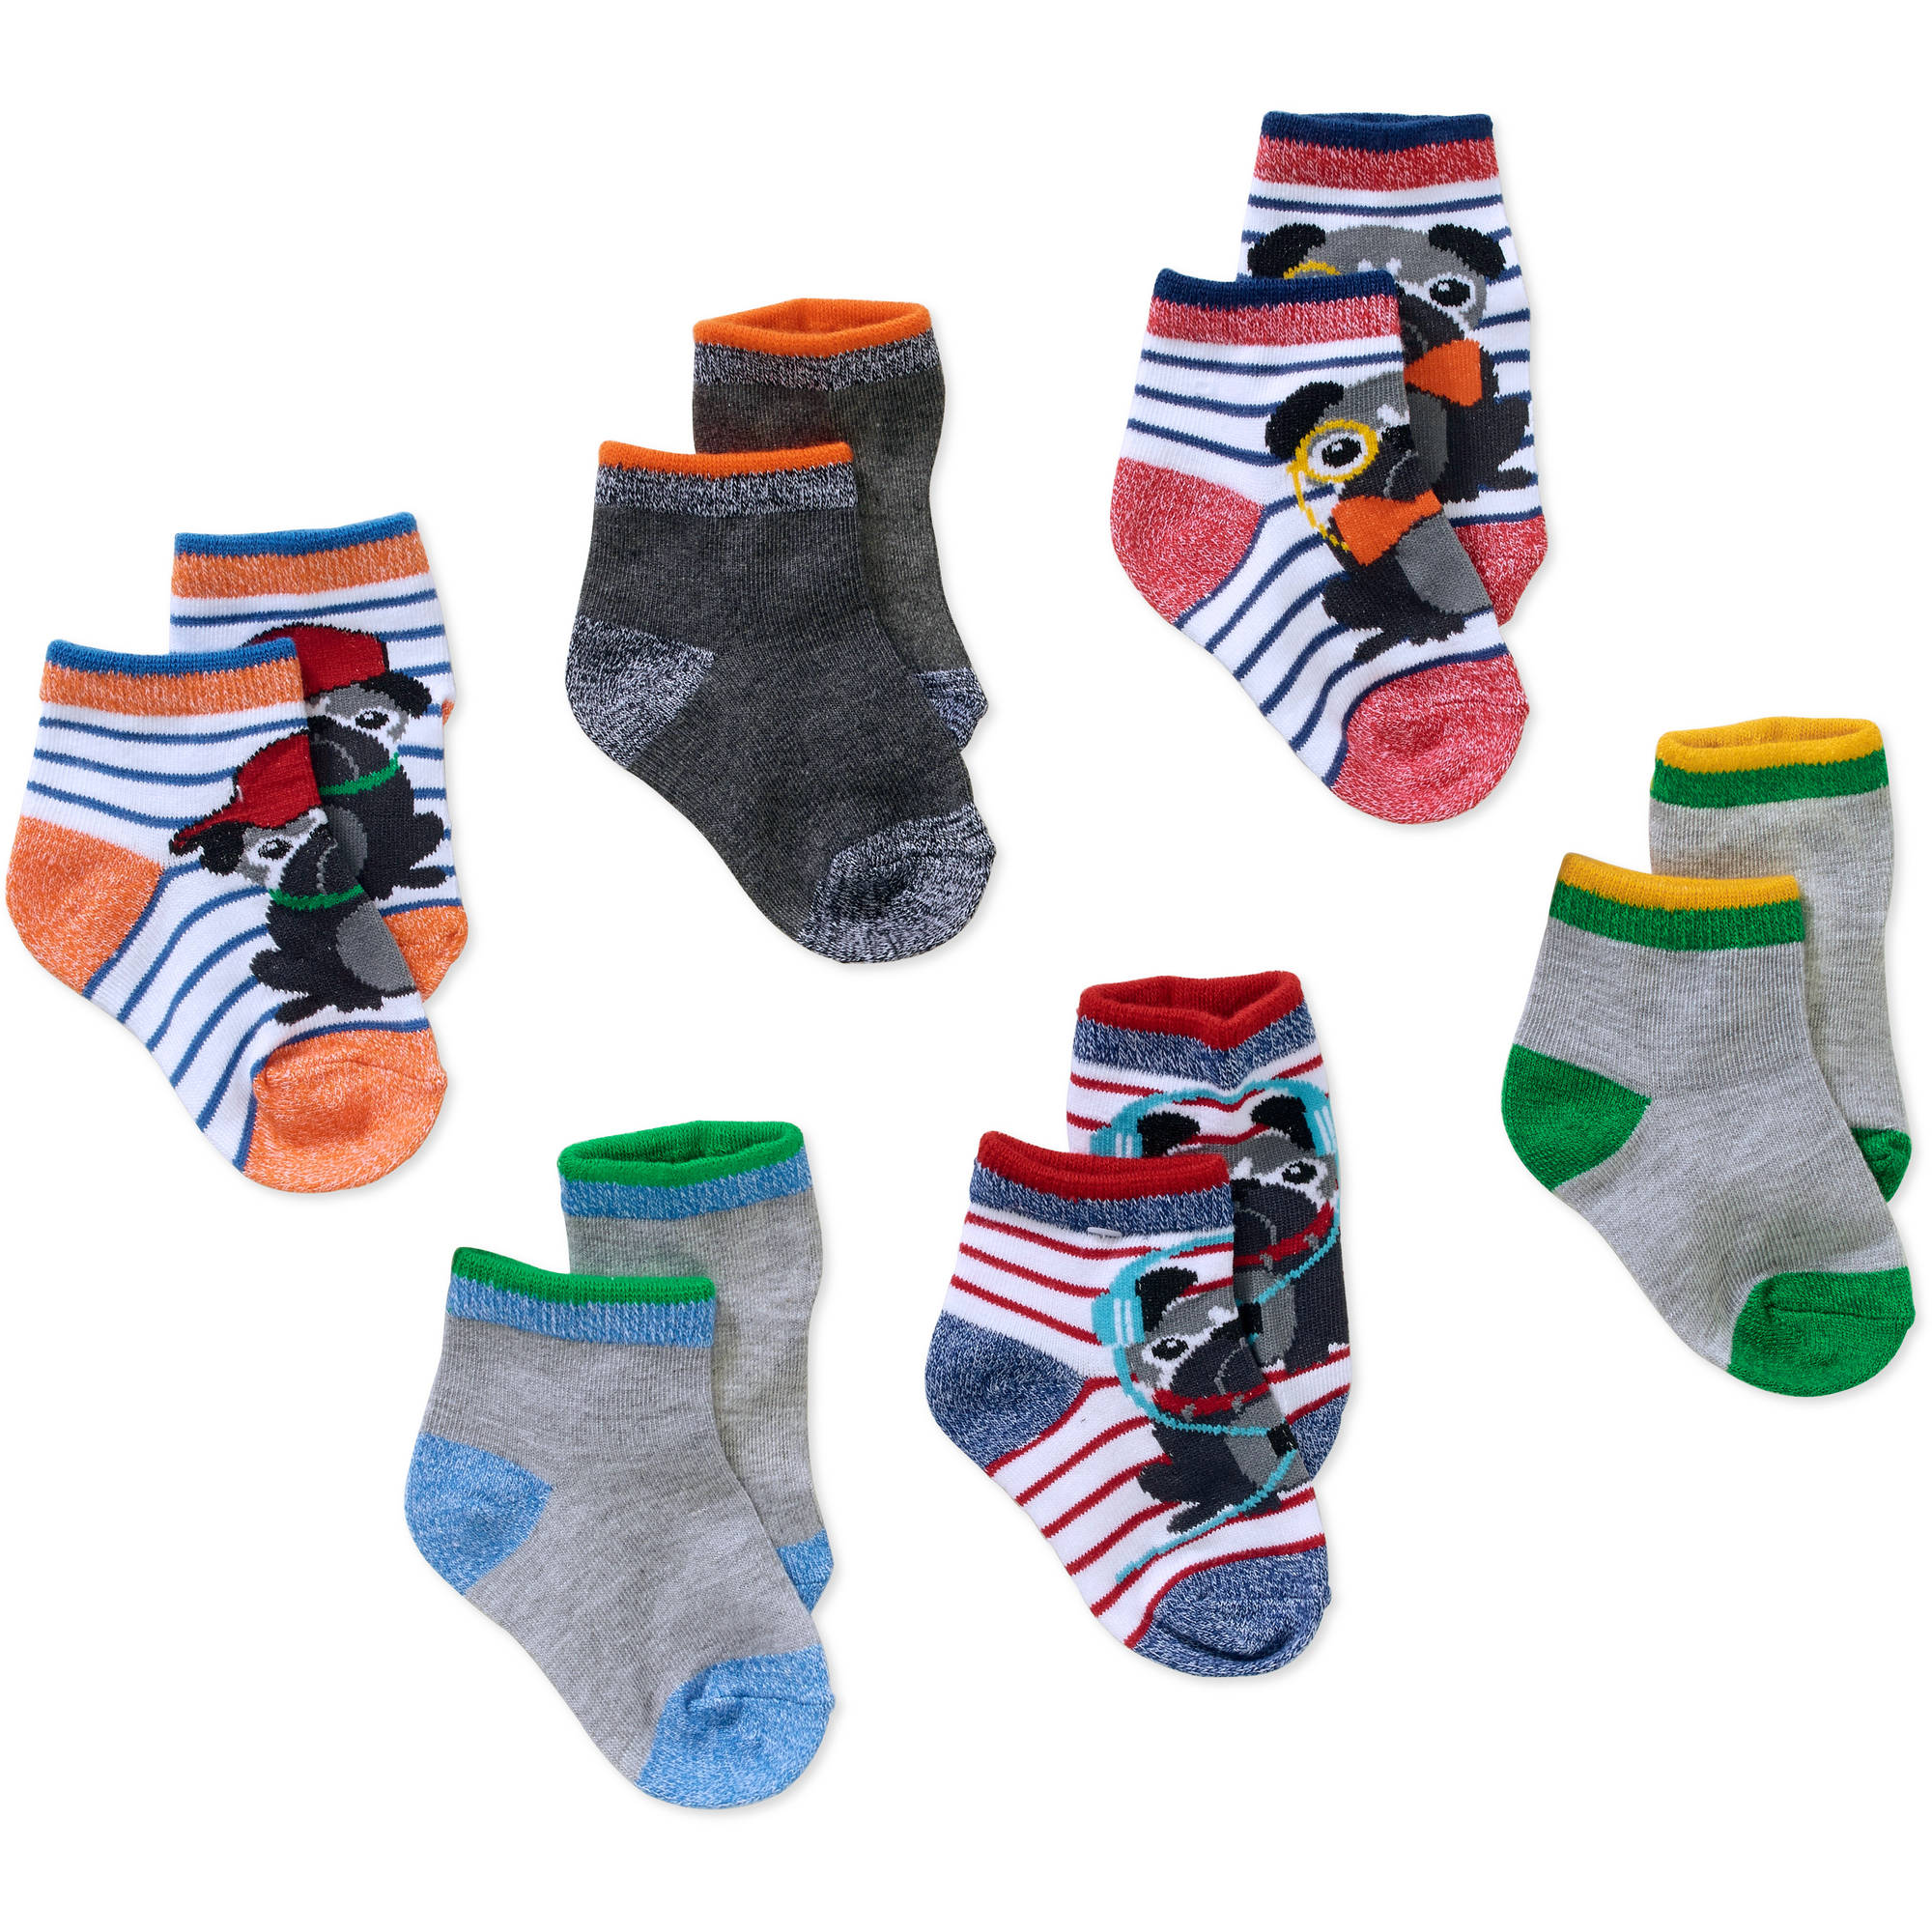 Garanimals Newborn to Toddler Baby Boy Shorty Marled Dog Print Socks, 6-Pack Ages 0-5T